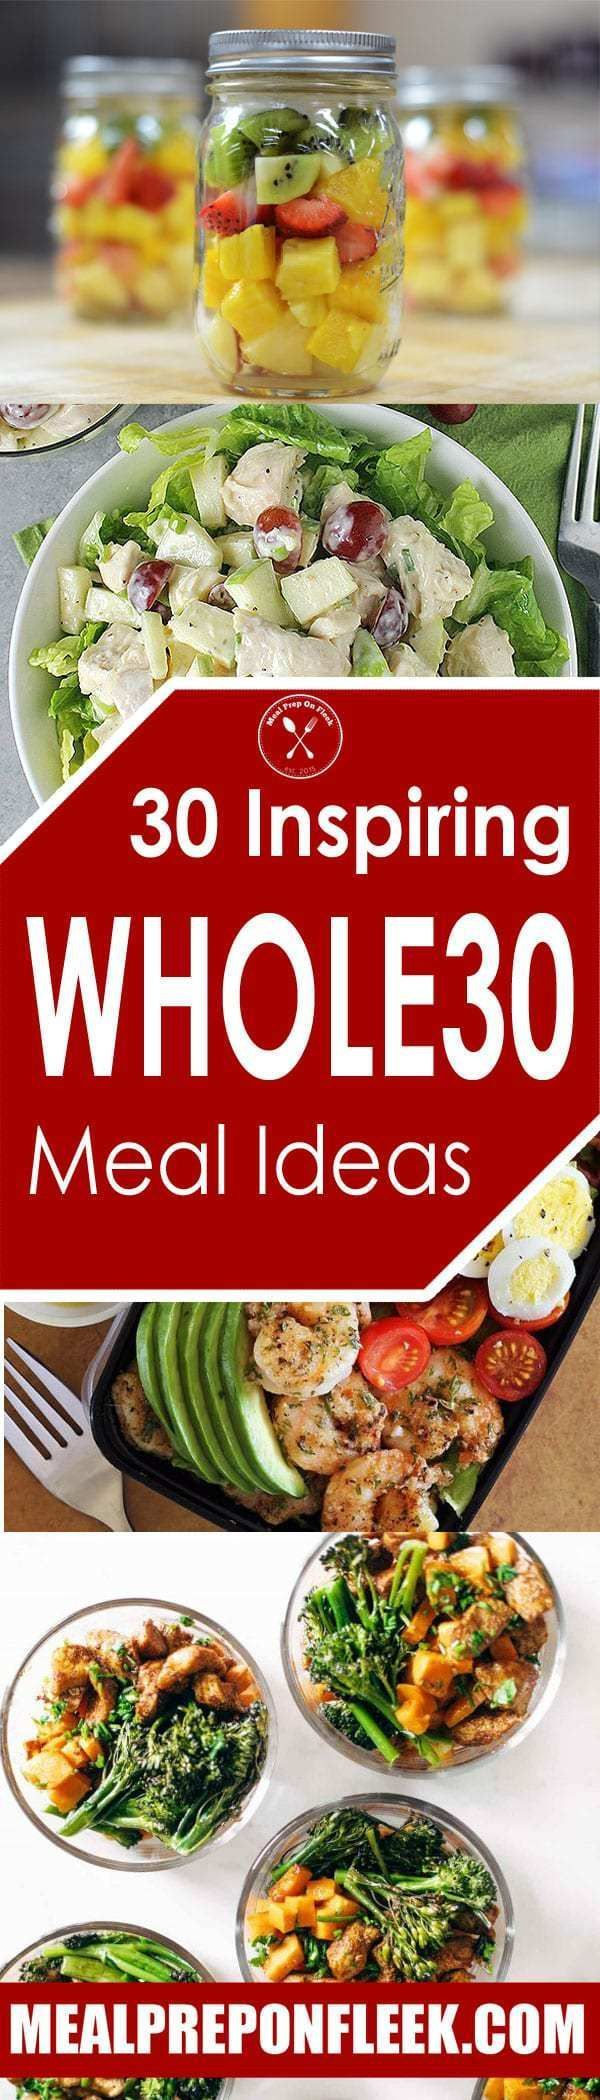 30 Whole30 Recipe Ideas - Meal prep is such an essential part of the Whole30 program. Here are 30 Whole30 Meal Prep compliant recipes ideas for you to make this week. #whole30 #whole30recipes #mealprep #mealprepping